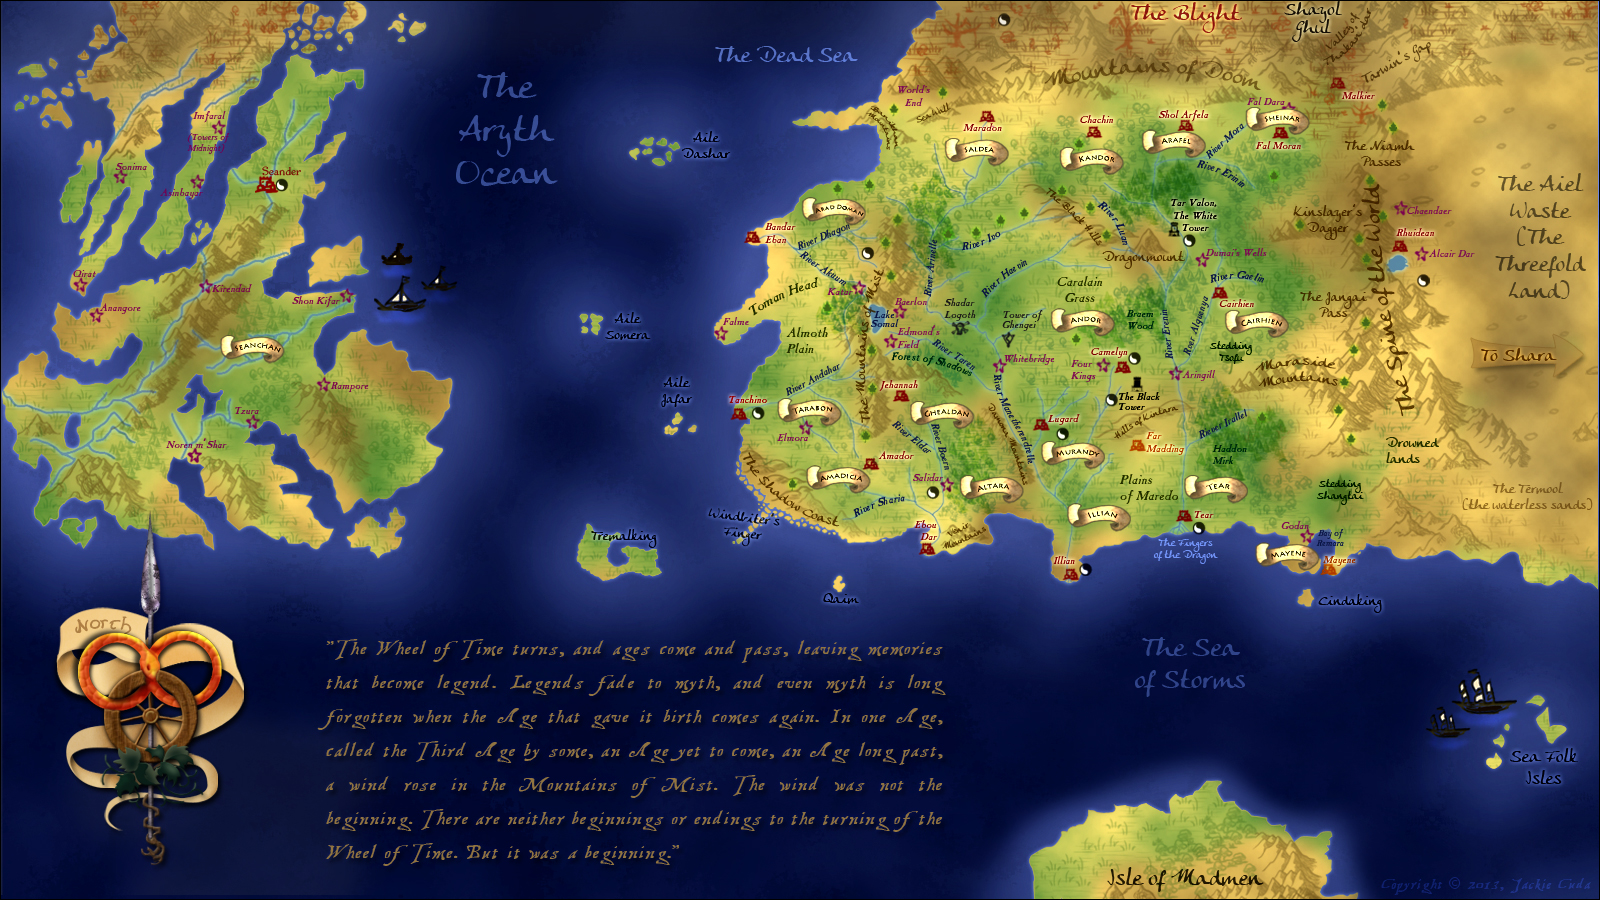 wotmapwallpaperversion by xxtayce · wheel of time chapter icons  customps . wheel of time map (final) by xxtayce on deviantart